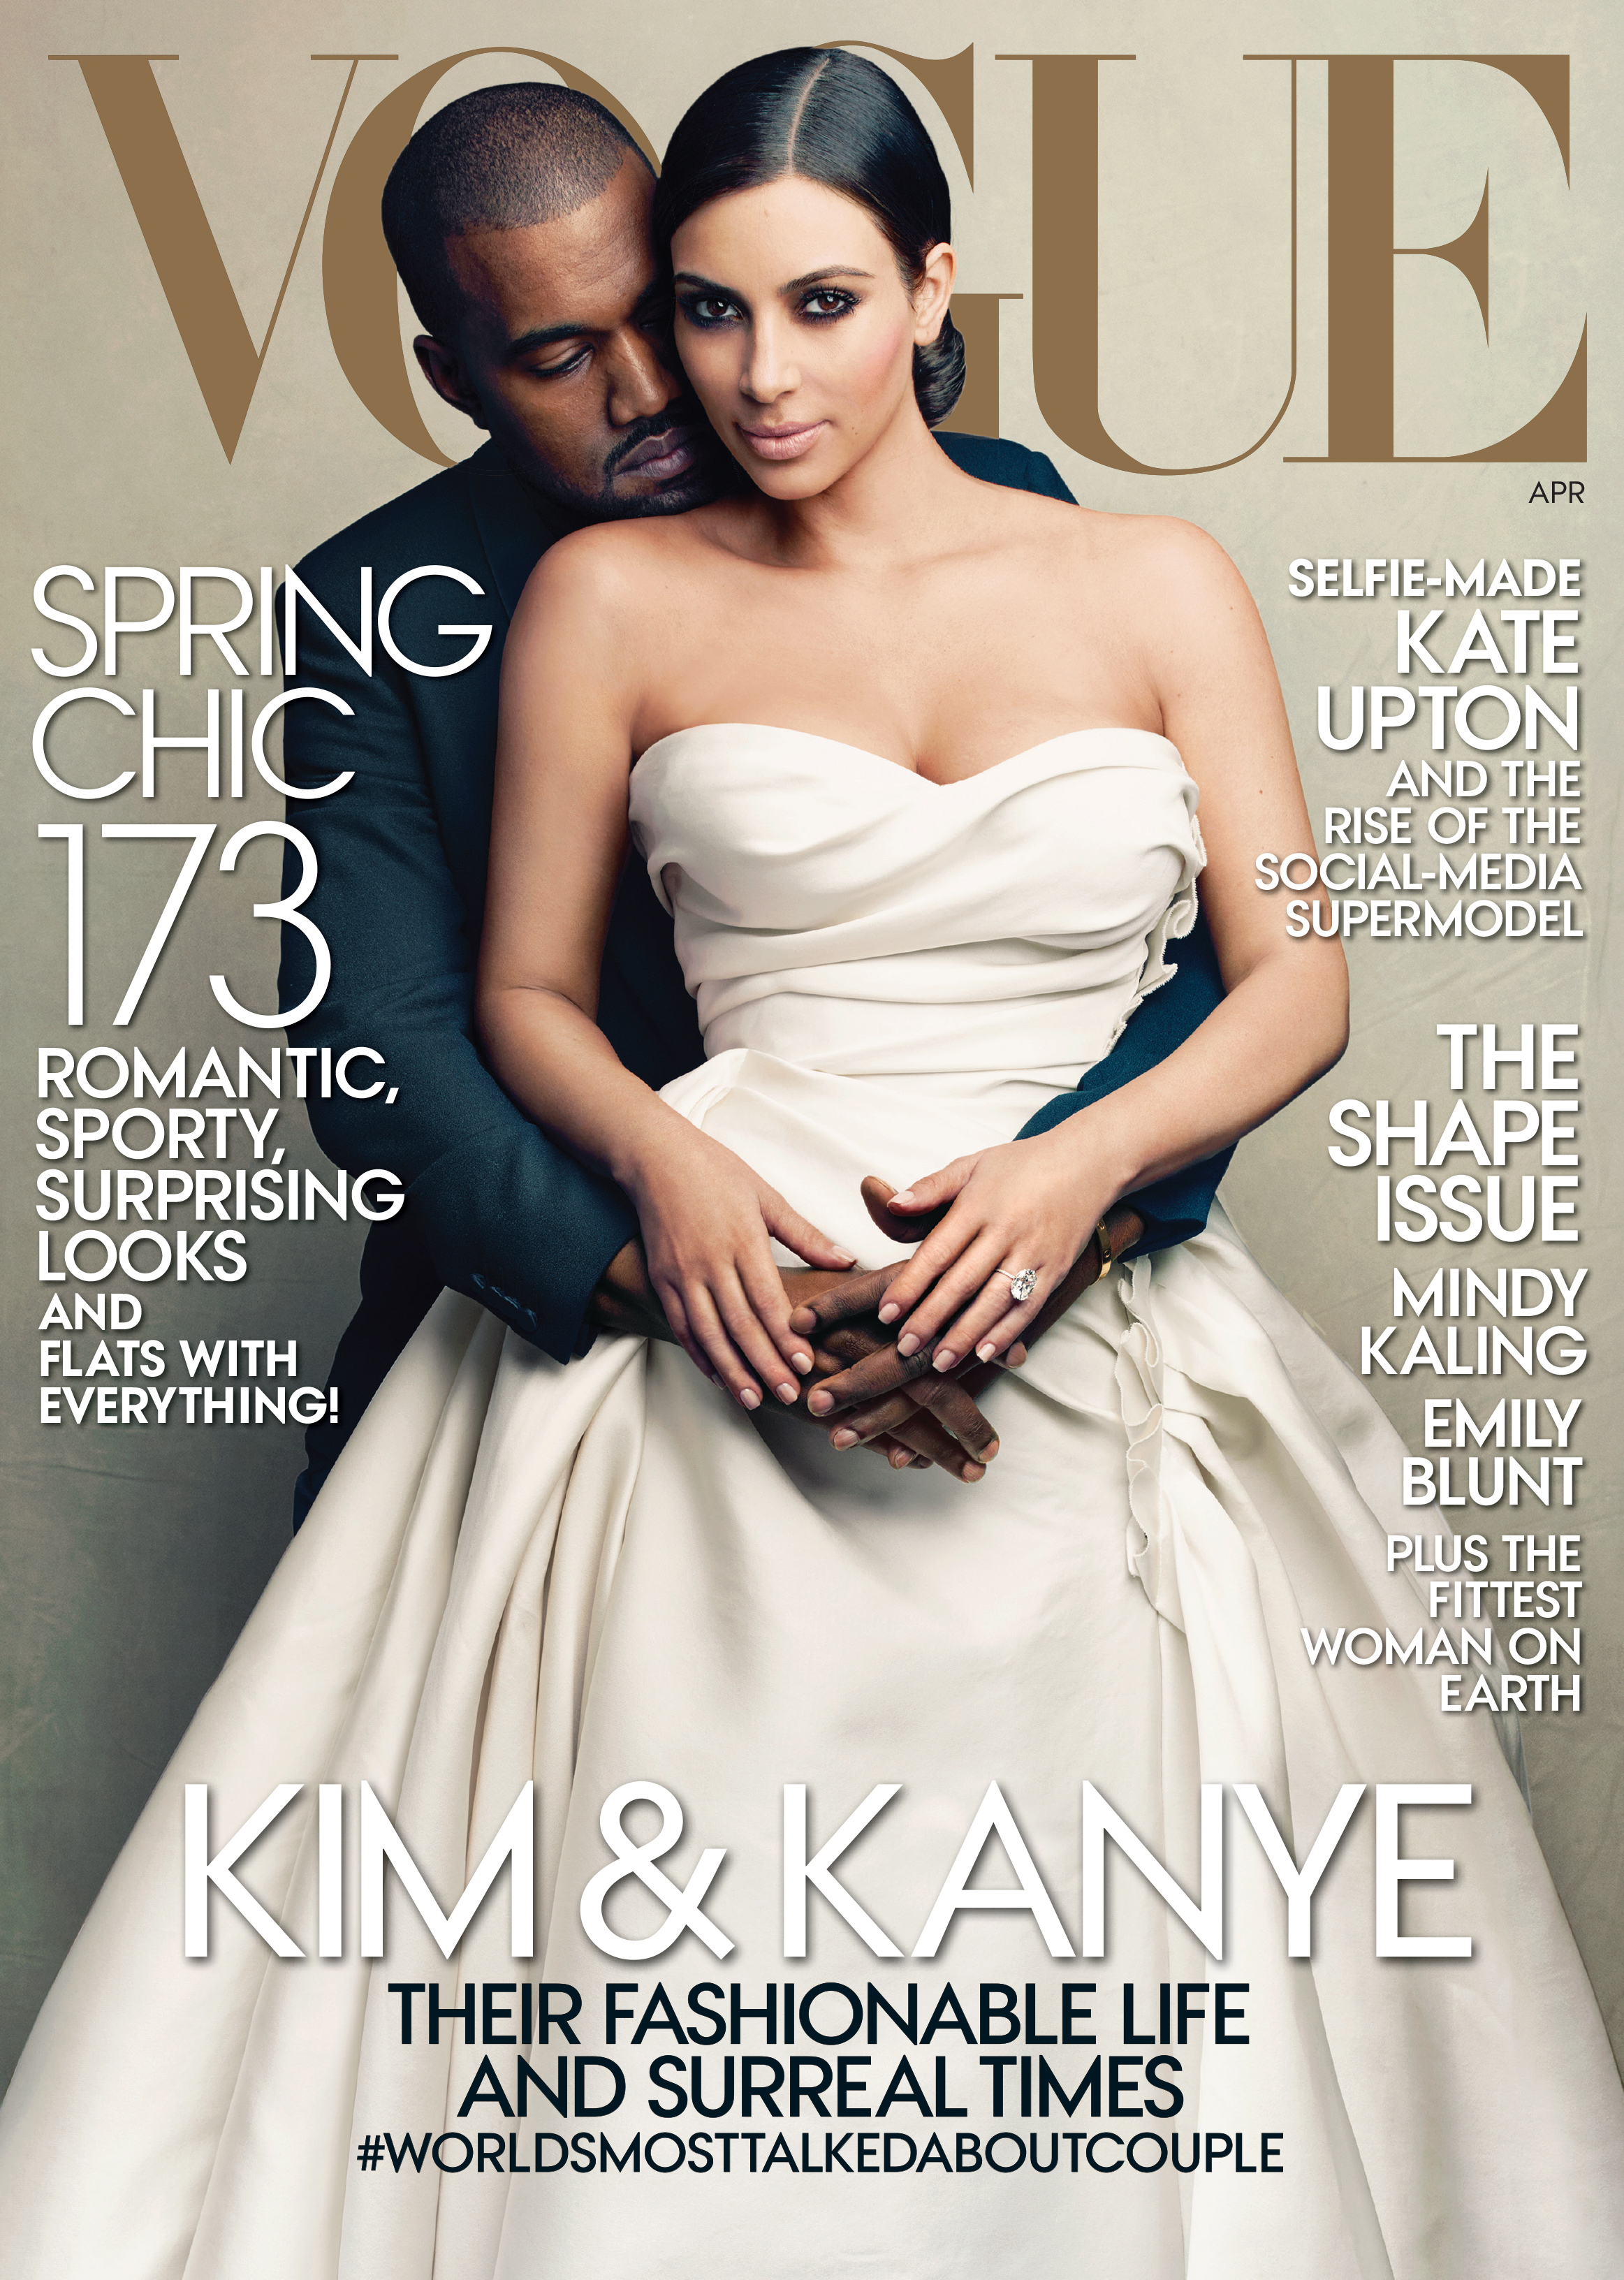 Photographed by Annie Leibovitz for Vogue US, April 2014.